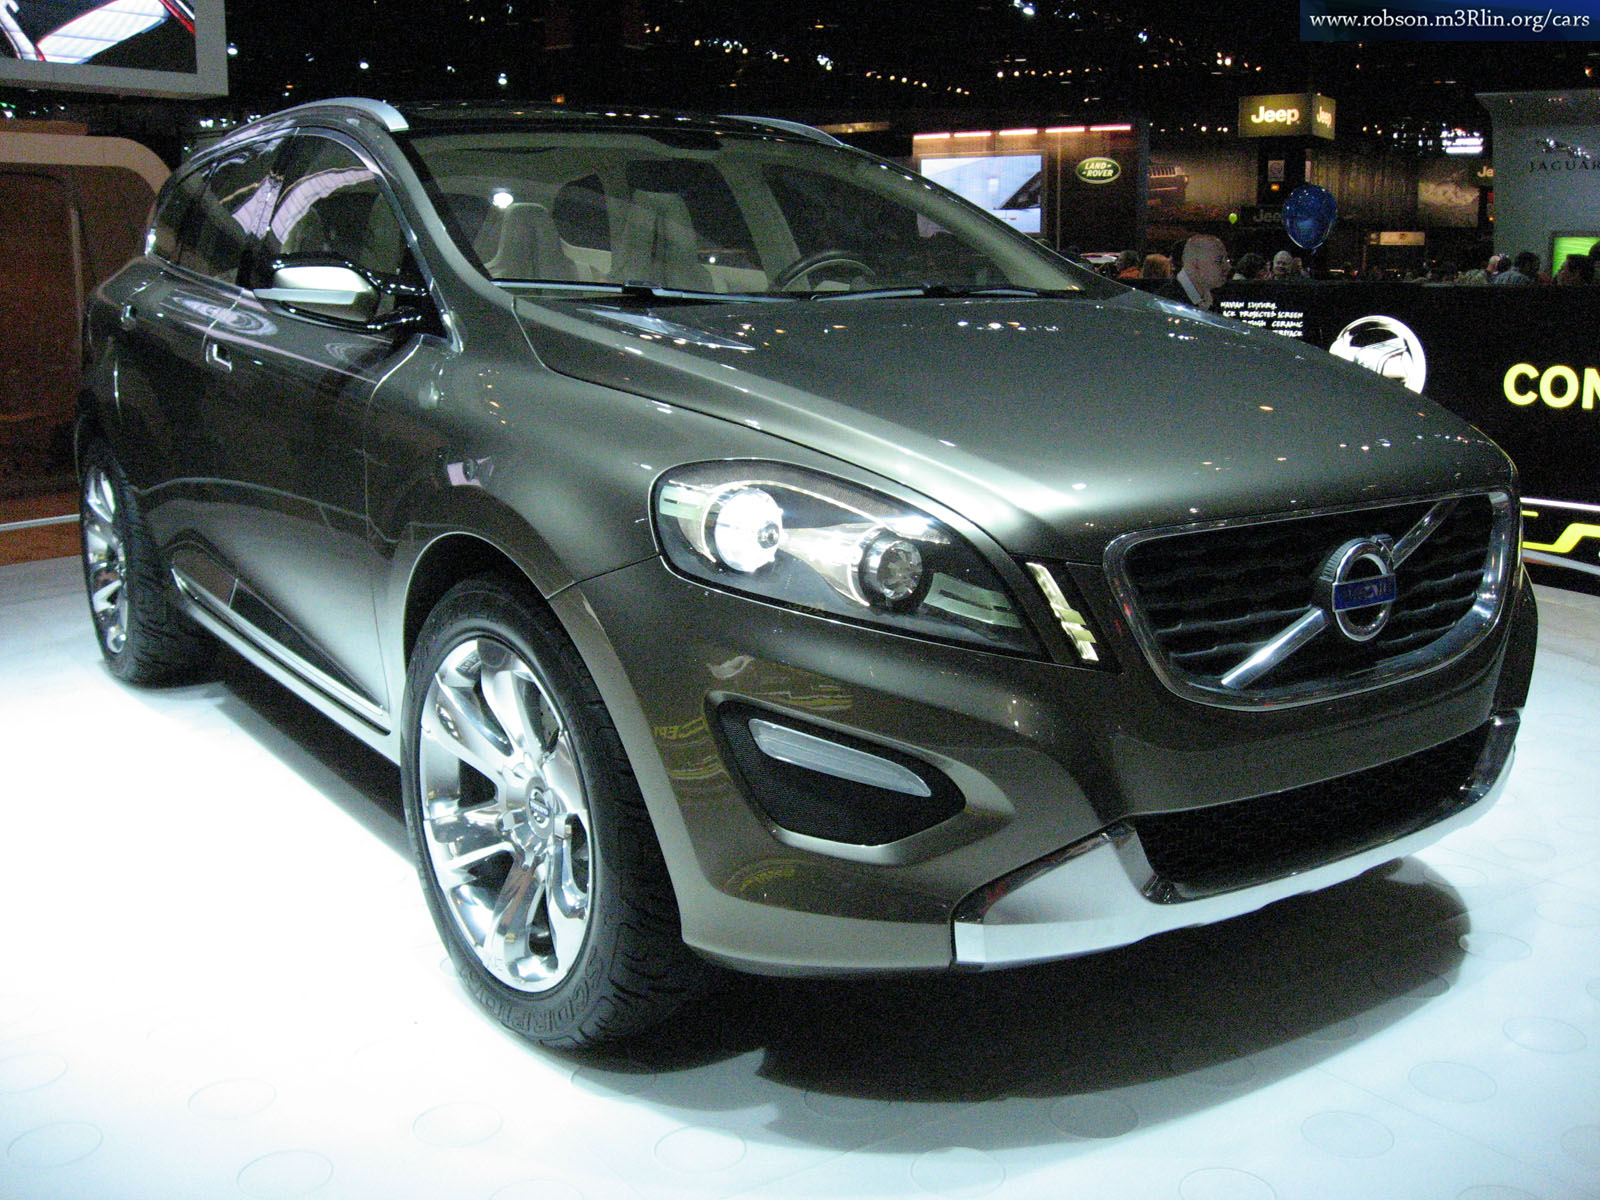 VOLVO XC60 brown